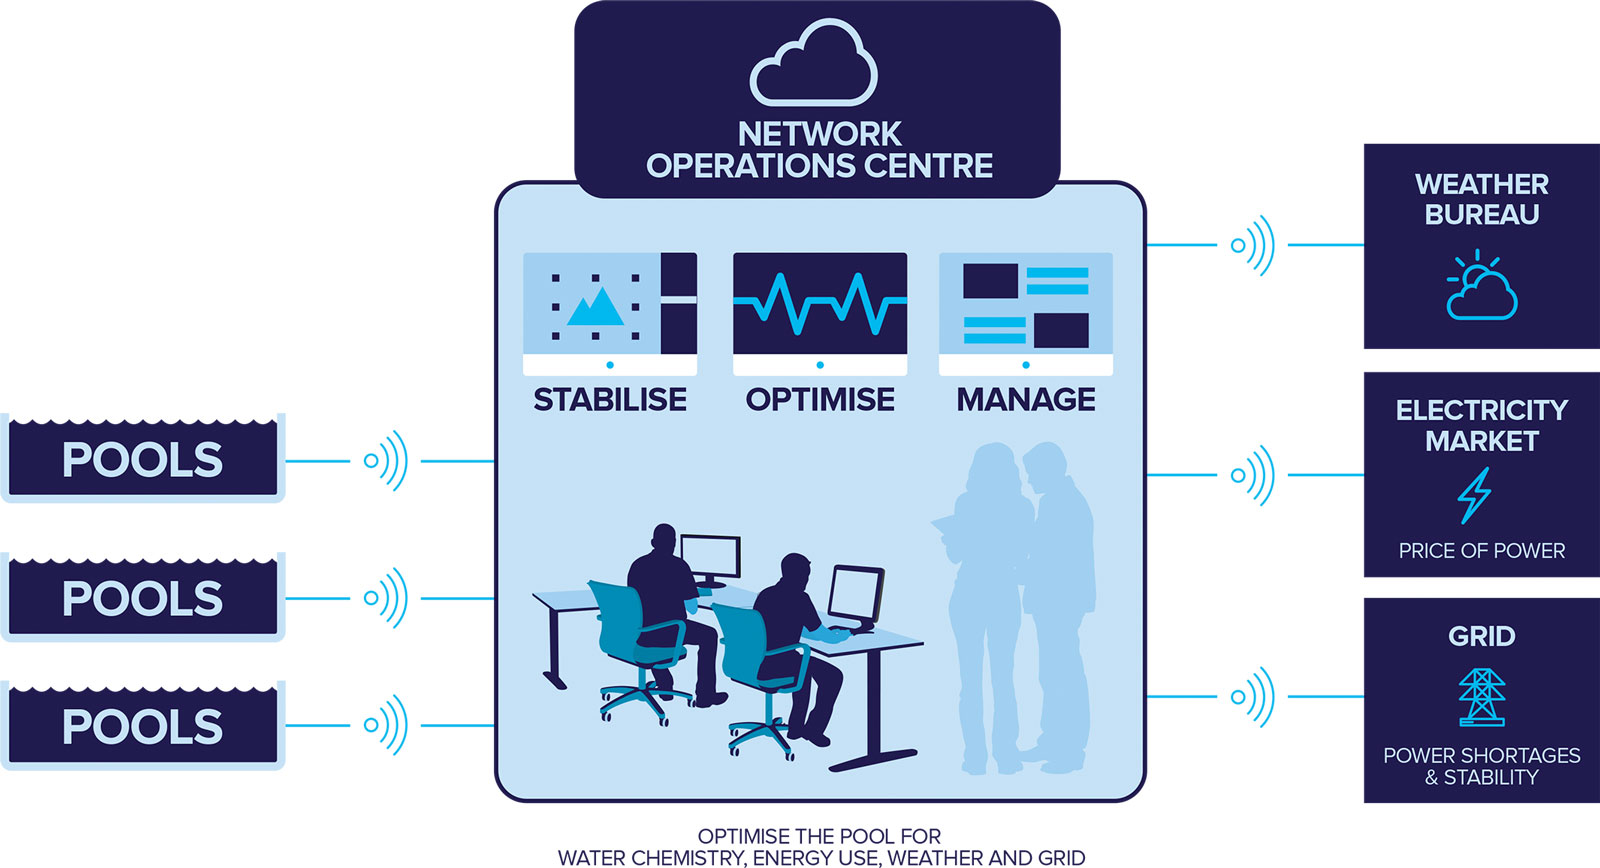 Pooled Energy Network Operations Centre